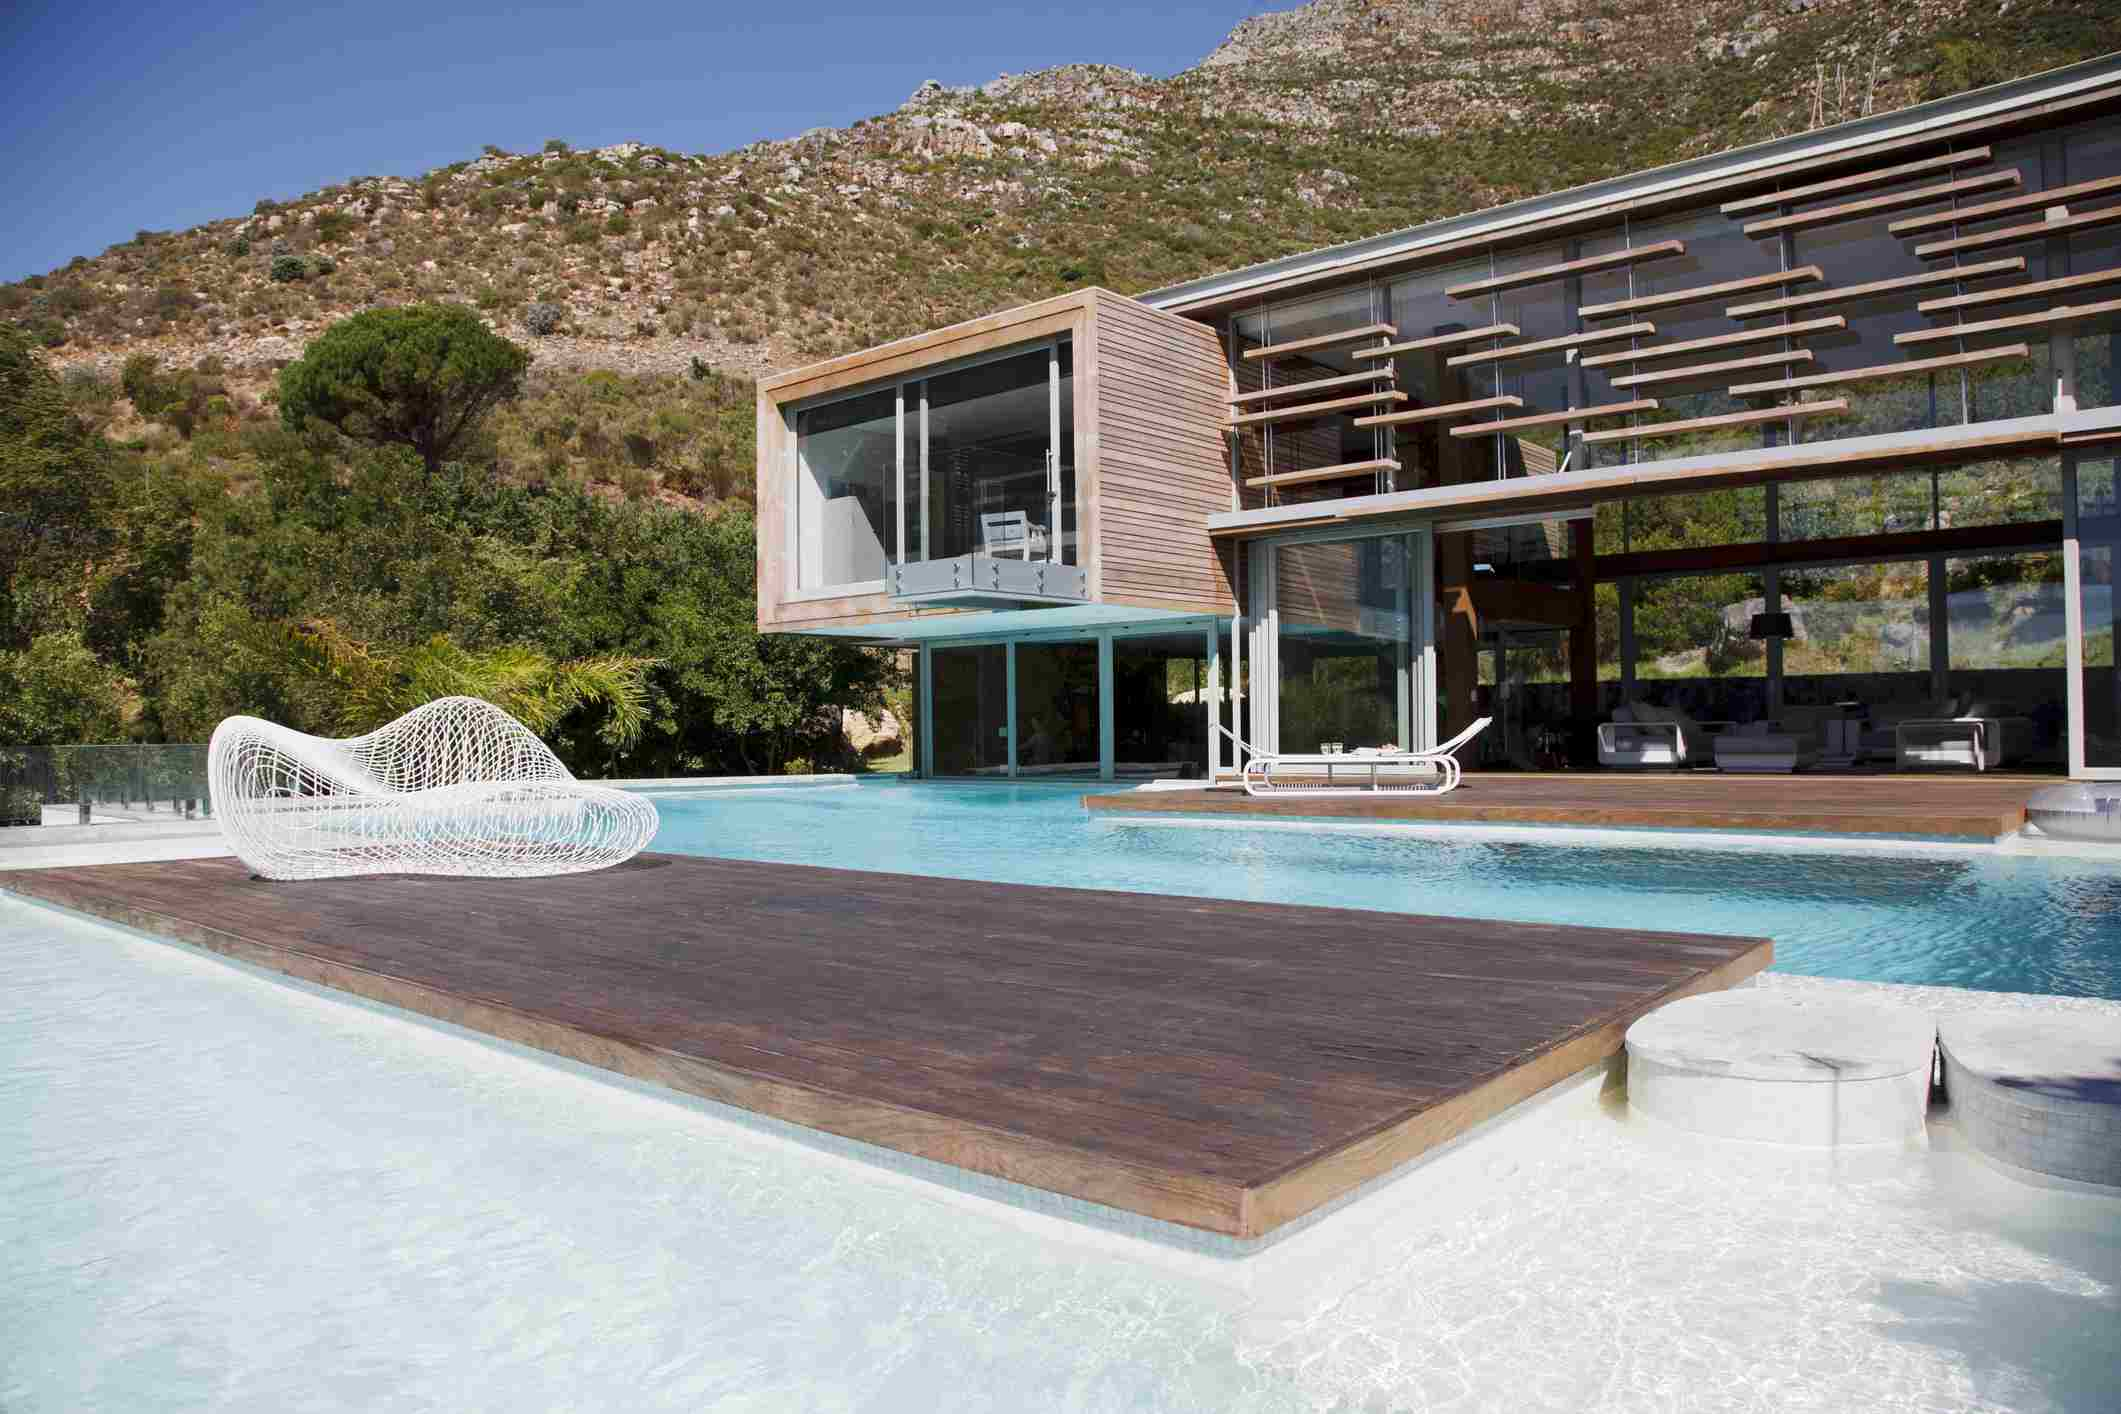 The best swimming pool structural design example zachary for Pool design examples